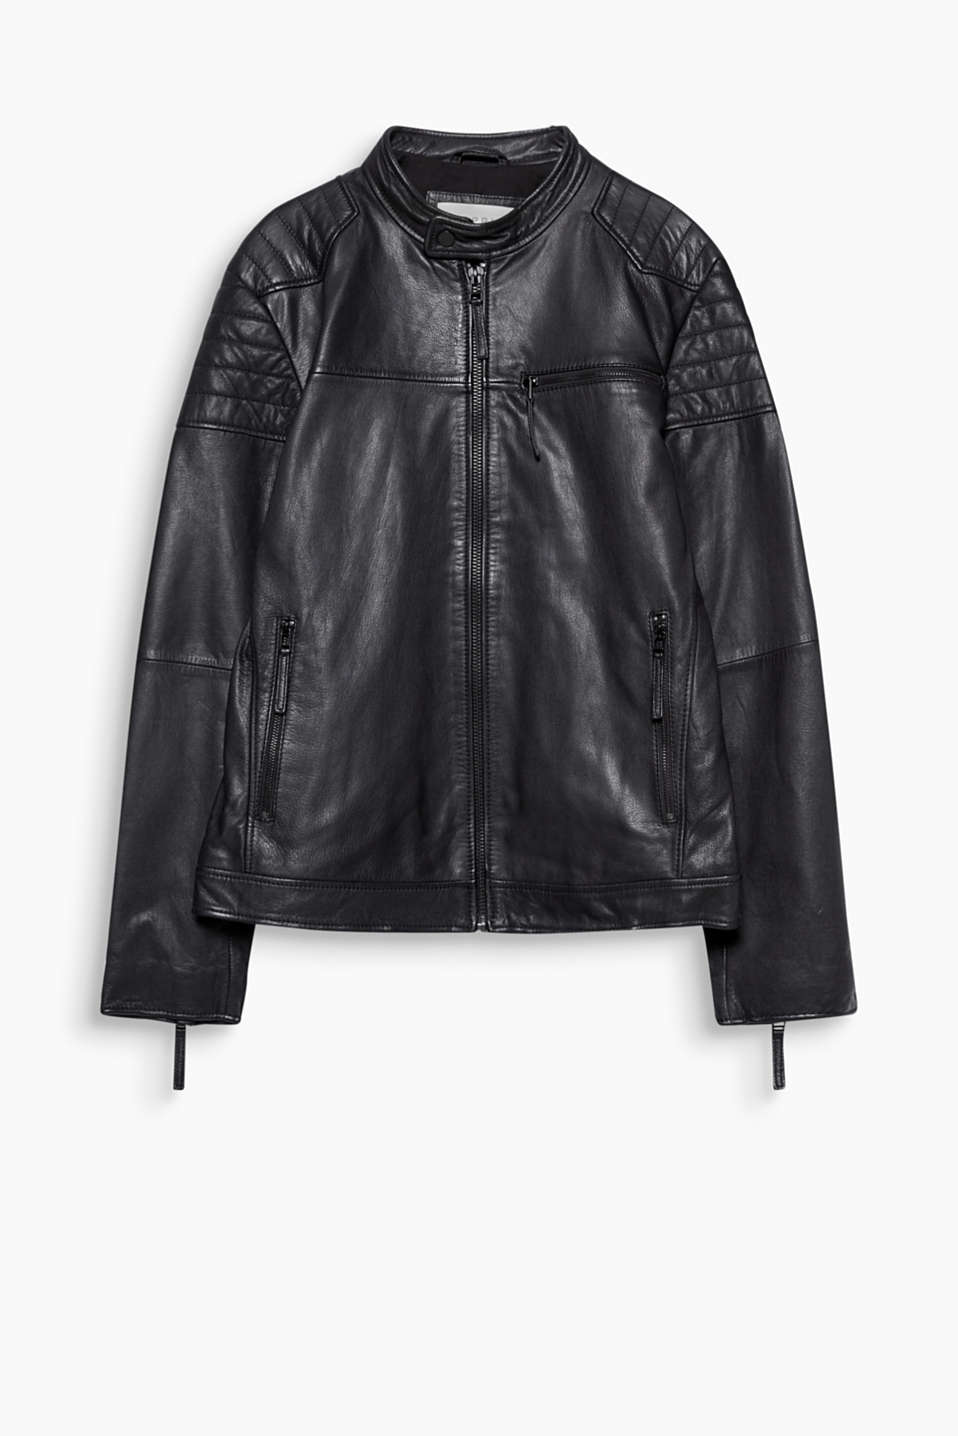 A high-quality fashion essential! This classic leather biker jacket boasts tarnished metal details.